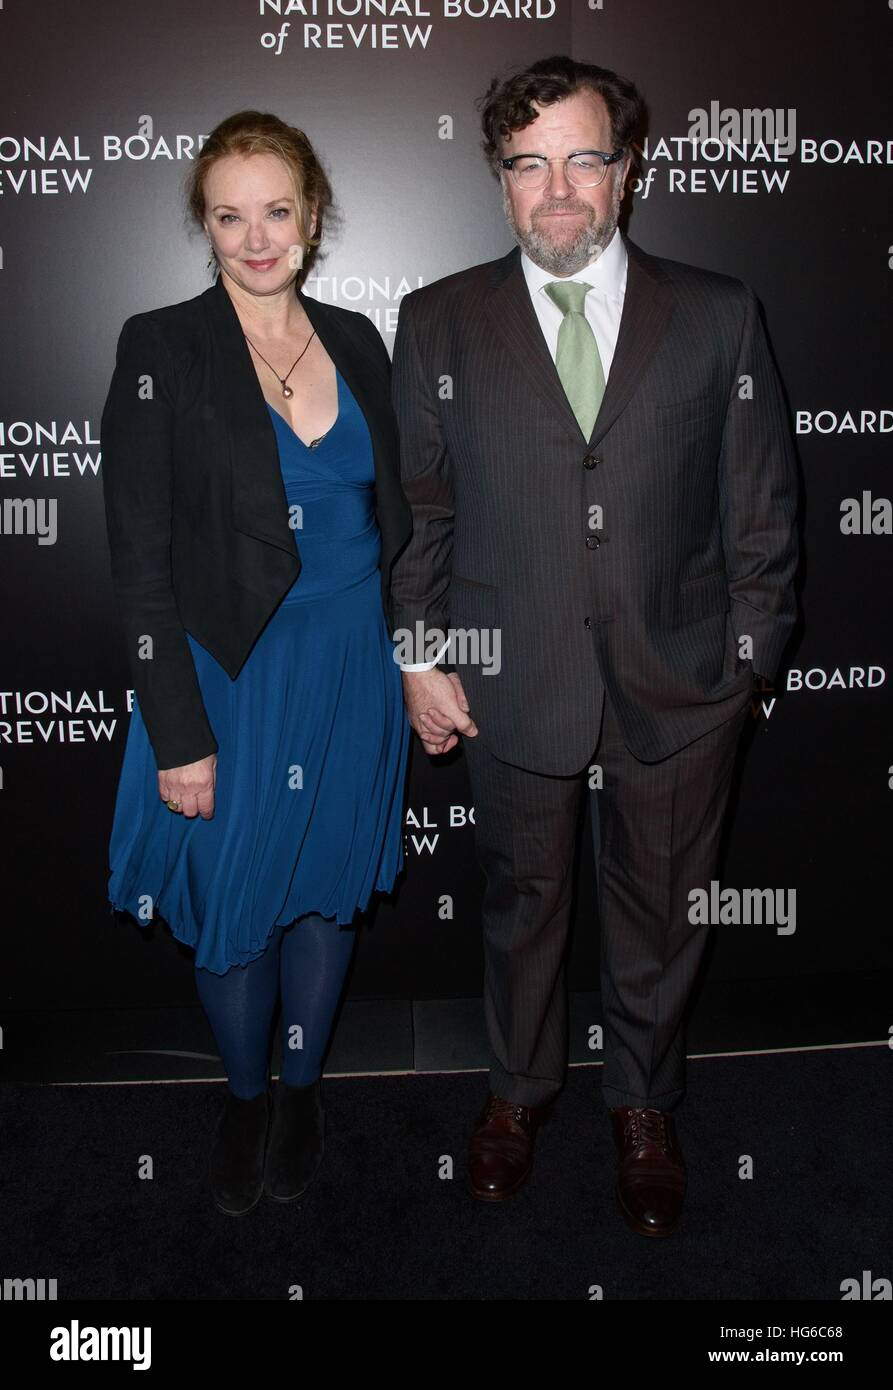 New York, NY, USA. 4th Jan, 2017. J. Smith-Cameron, Kenneth Lonergan at arrivals for National Board Of Review Awards - Stock Image